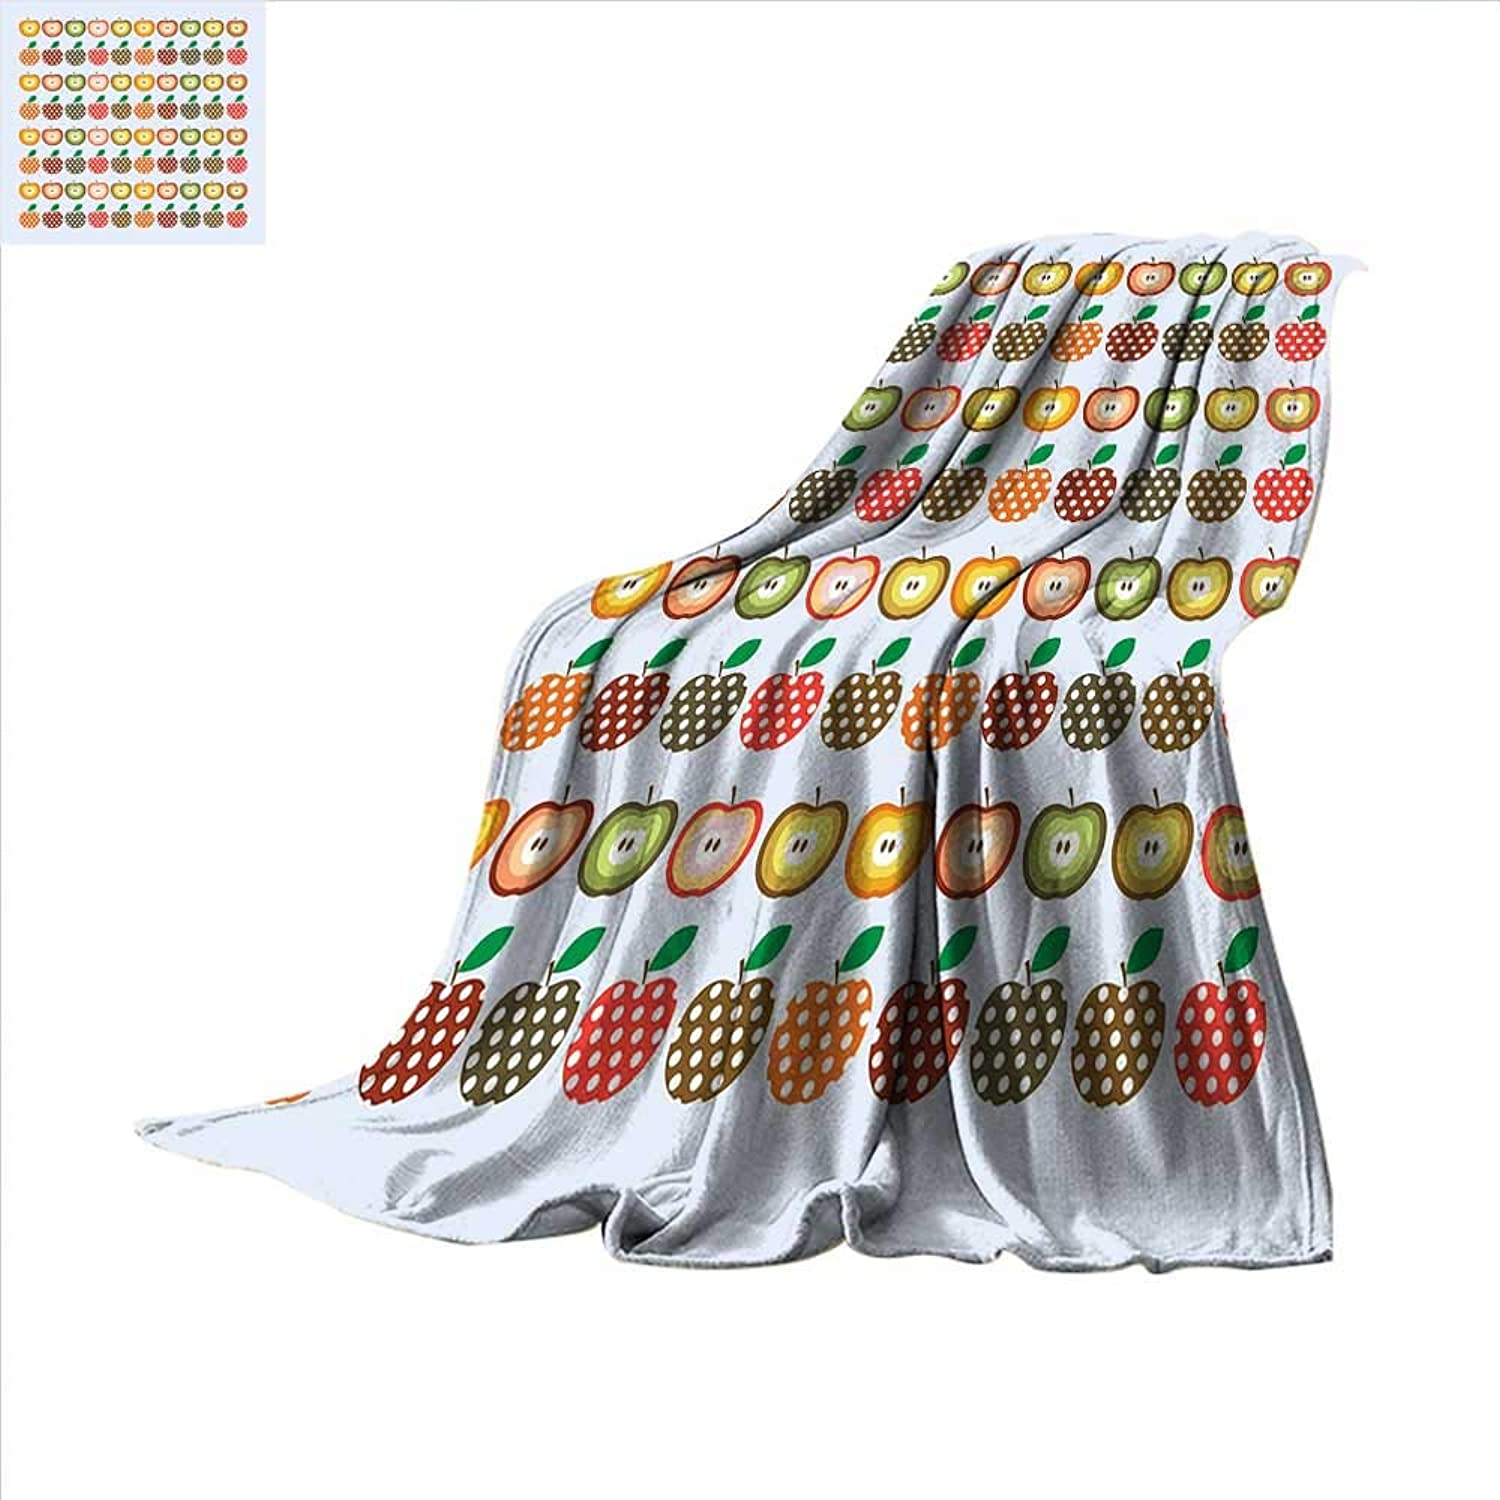 Smallbeefly Apple Super Soft Lightweight Blanket Retro Style Pattern Apples with Polka Dot Pattern colorful Cheerful Happy Healthy Oversized Travel Throw Cover Blanket 60 x50  Multicolor